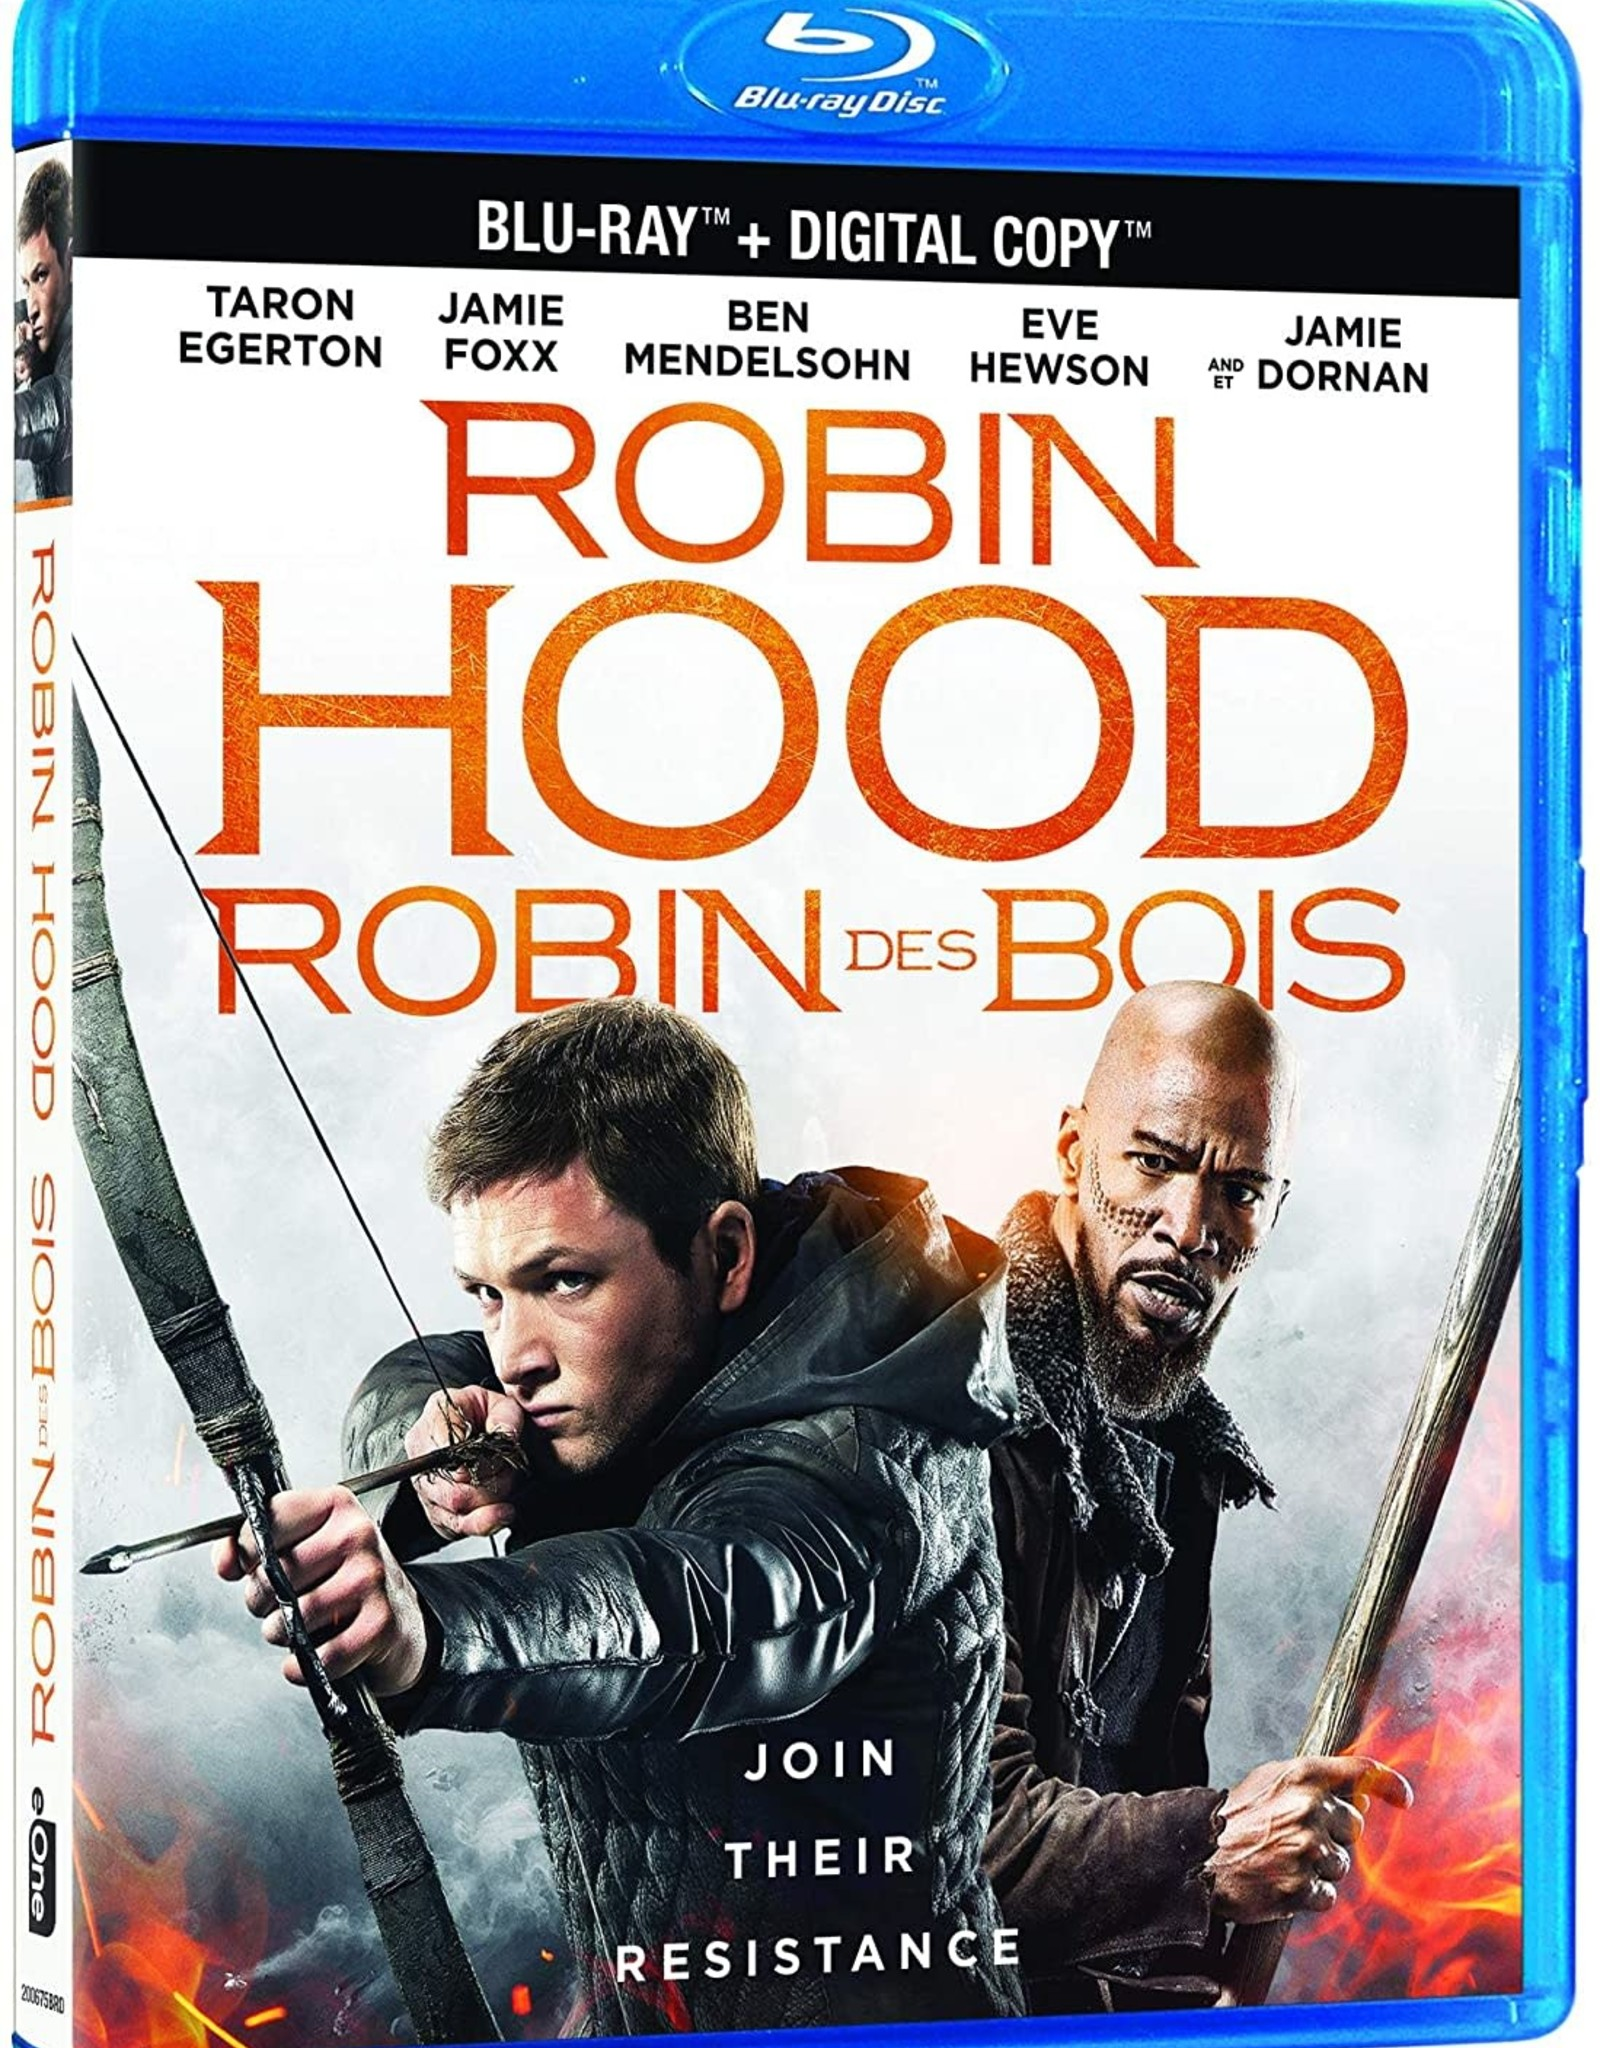 Used Bluray Robin Hood 2019 (USED)